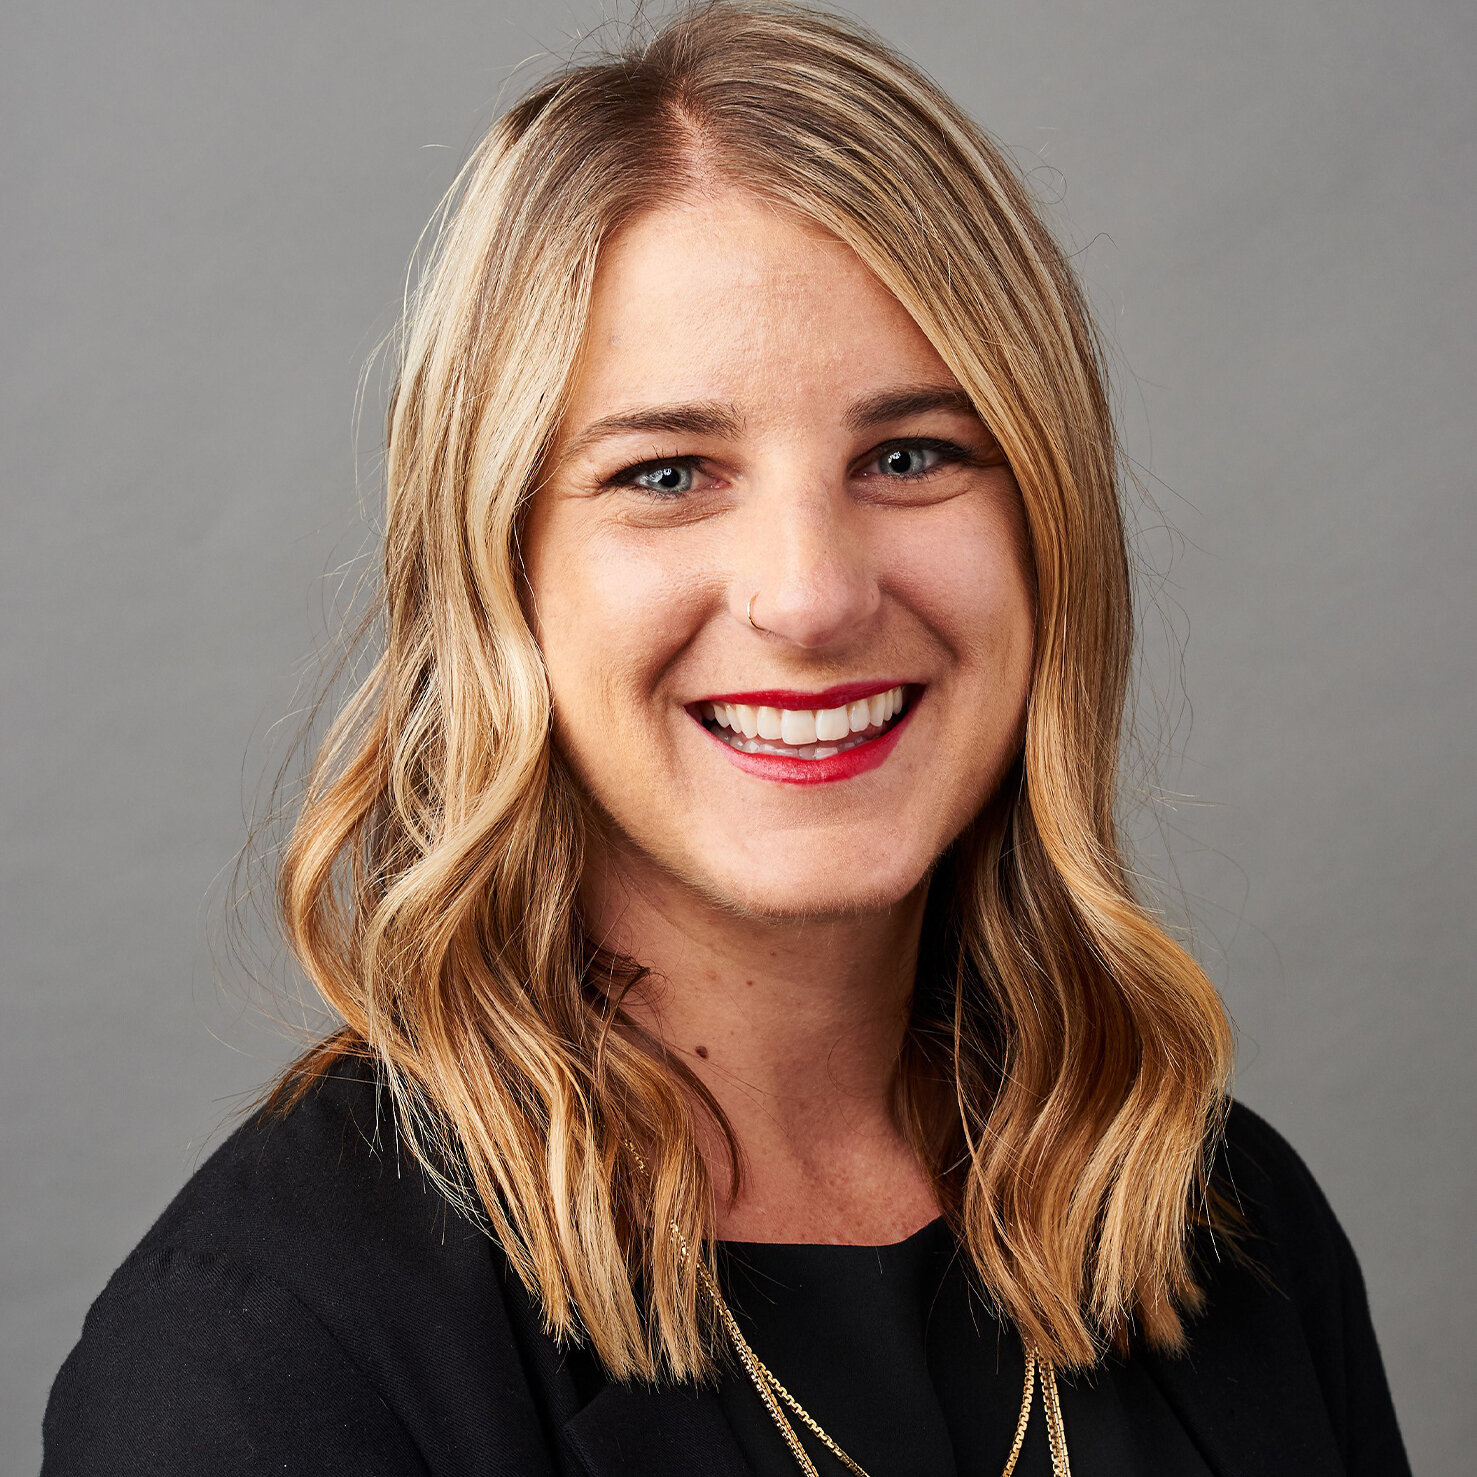 Rachel Horgan - Director of EventsPuget Sound Business JournalExperience Designer | Community Builder | Leader